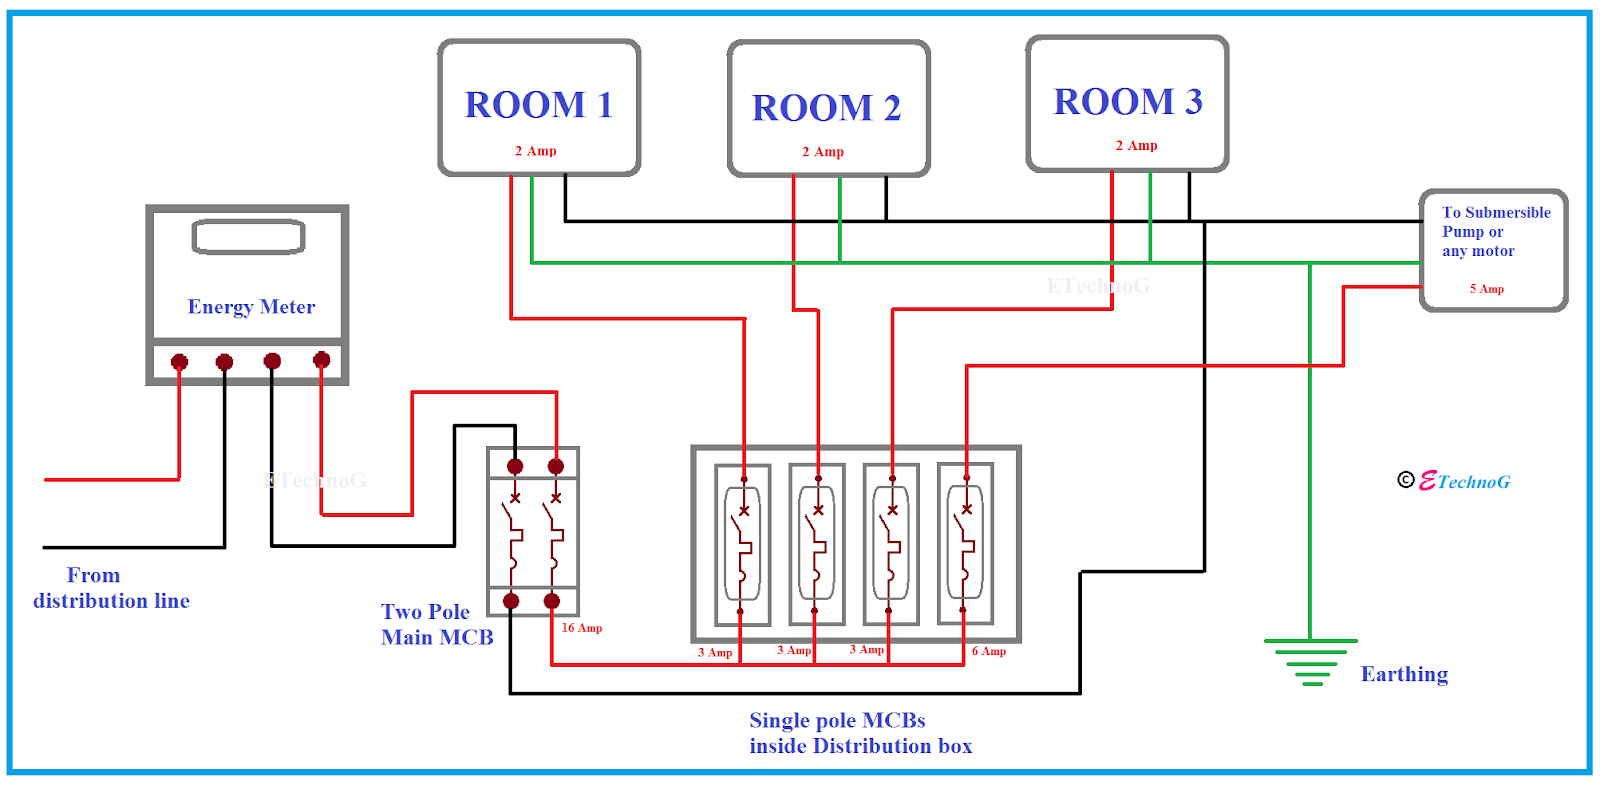 wiring diagram for house with mcb rating selection guide etechnog electrical wiring diagram for house [ 1600 x 789 Pixel ]